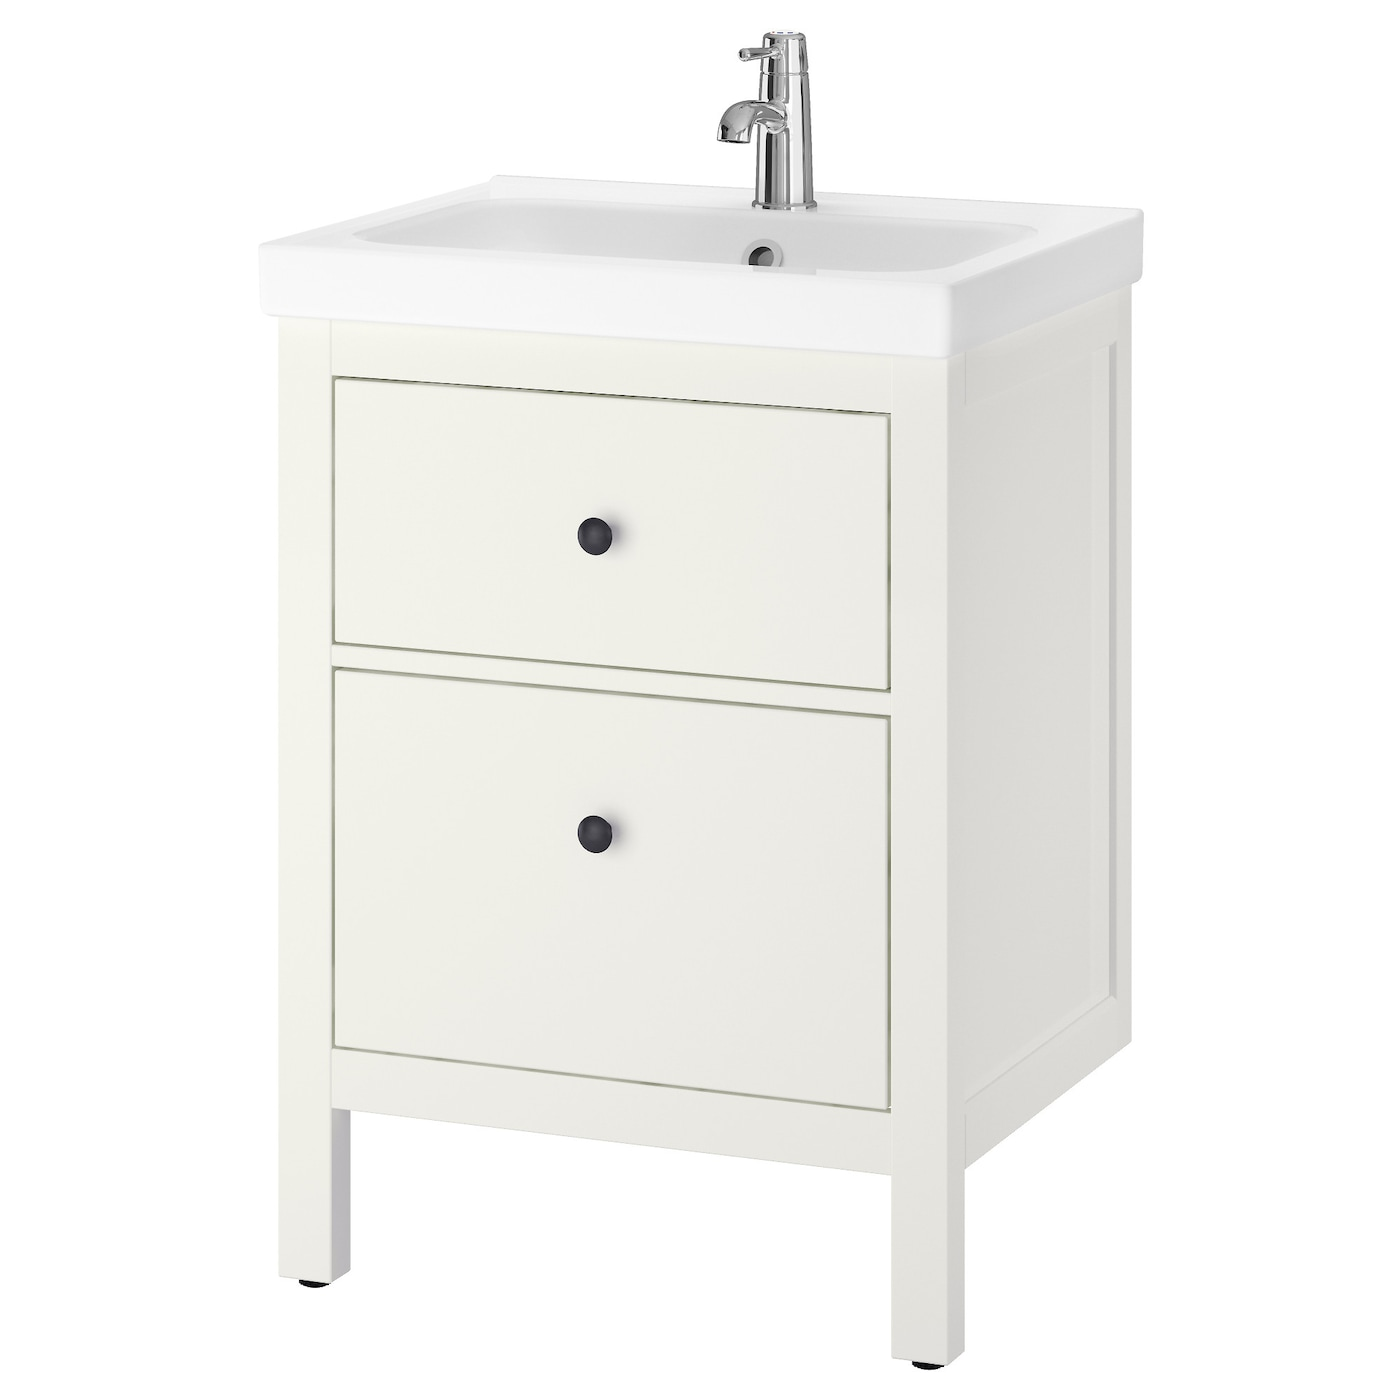 ODENSVIK HEMNES Wash stand with 2 drawers White 60x49x89 cm IKEA